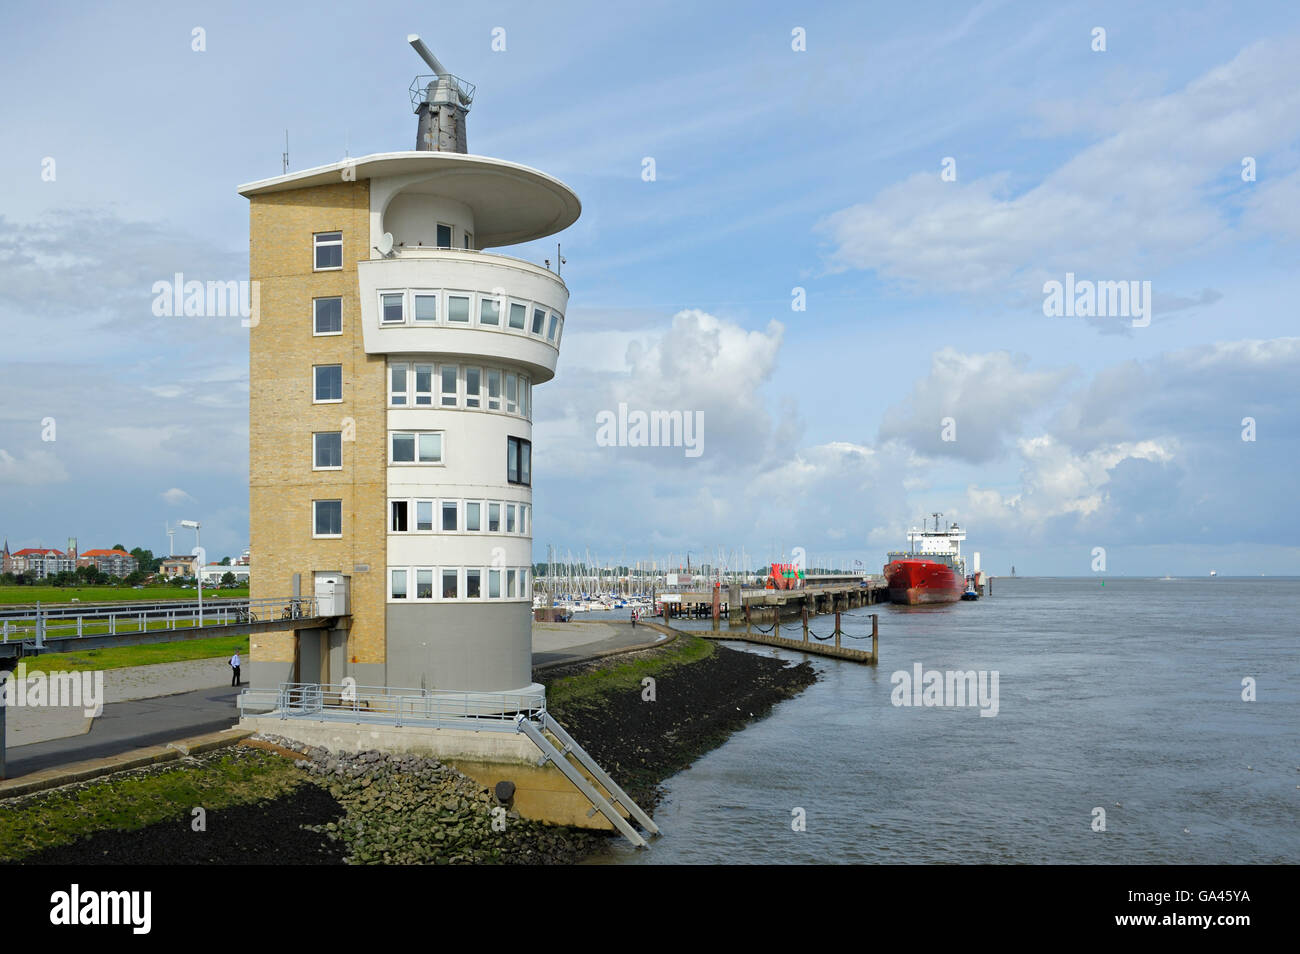 Radar tower, harbour, Cuxhaven, Germany - Stock Image